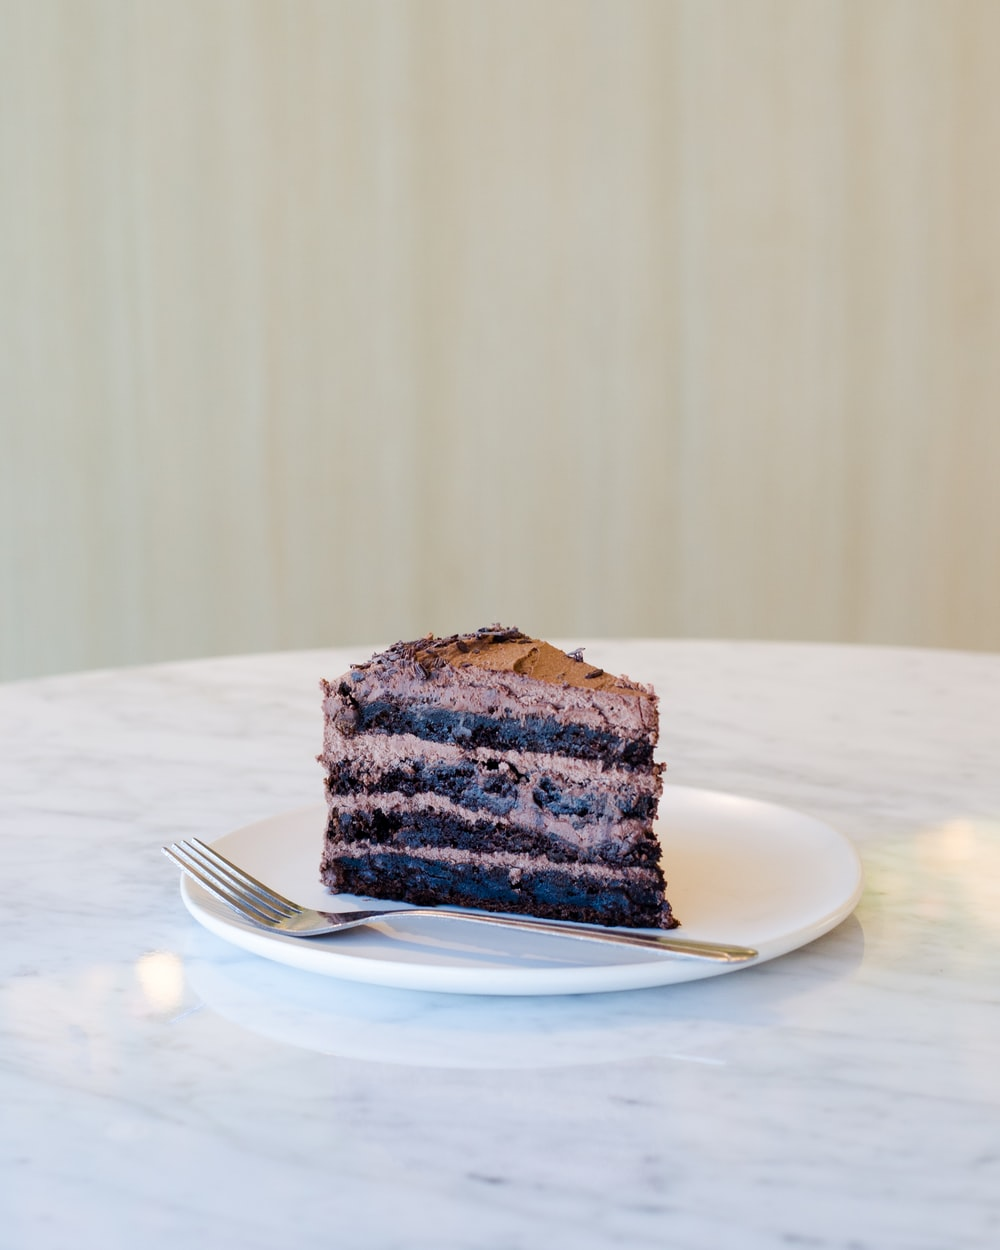 20Th Birthday Cake Pictures [HD] | Download Free Images on Unsplash